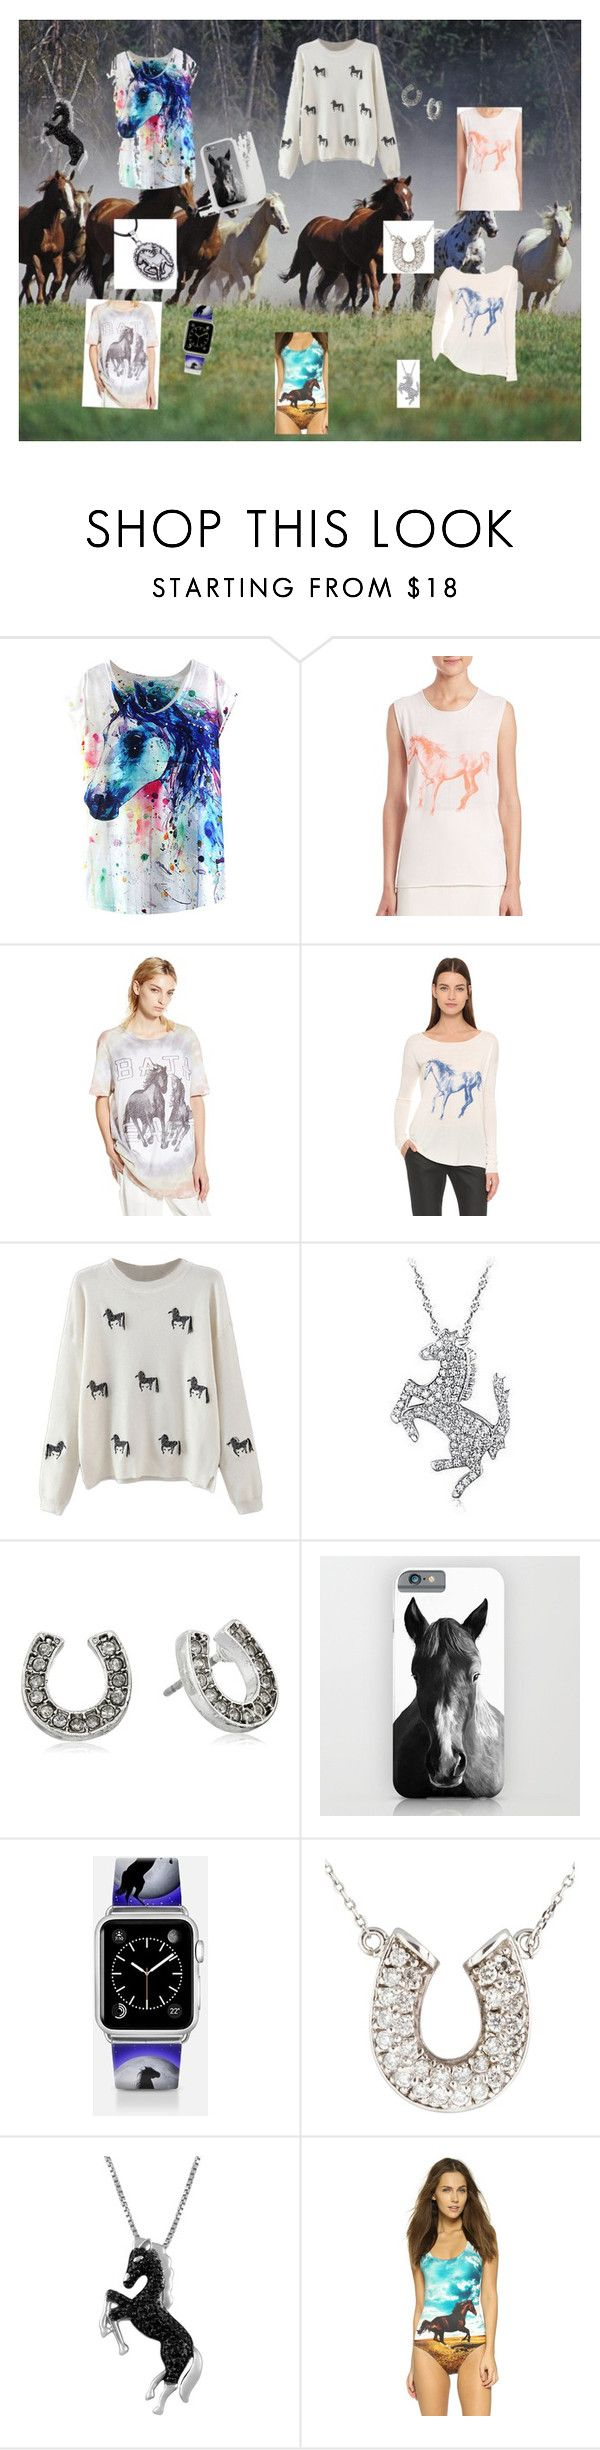 """""""WIP HORSES!!"""" by gracenickel on Polyvore featuring Wild Horses, Tess Giberson, Baja East, Belec, Betsey Johnson, Casetify, Jewel Exclusive, We Are Handsome, KINNO and horses"""